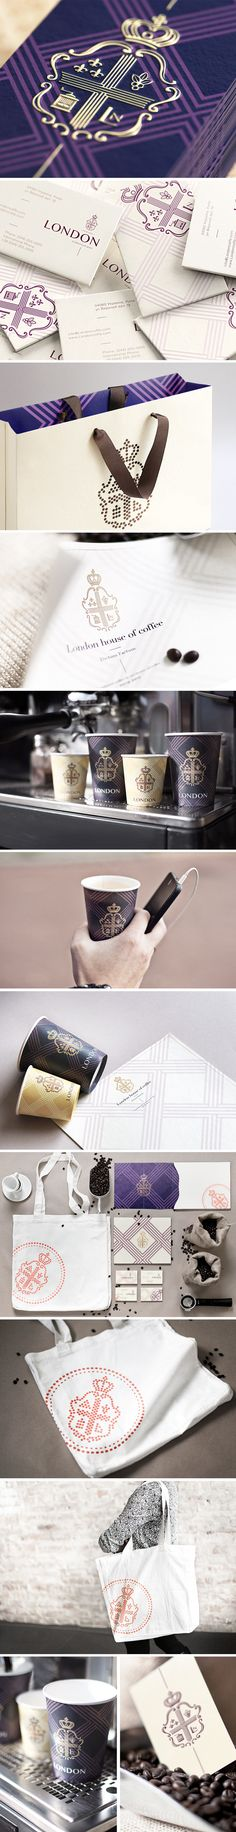 Coffee House London branding. Very cohesive collection and I really love the color choices. It makes the collection feel royal and regal.